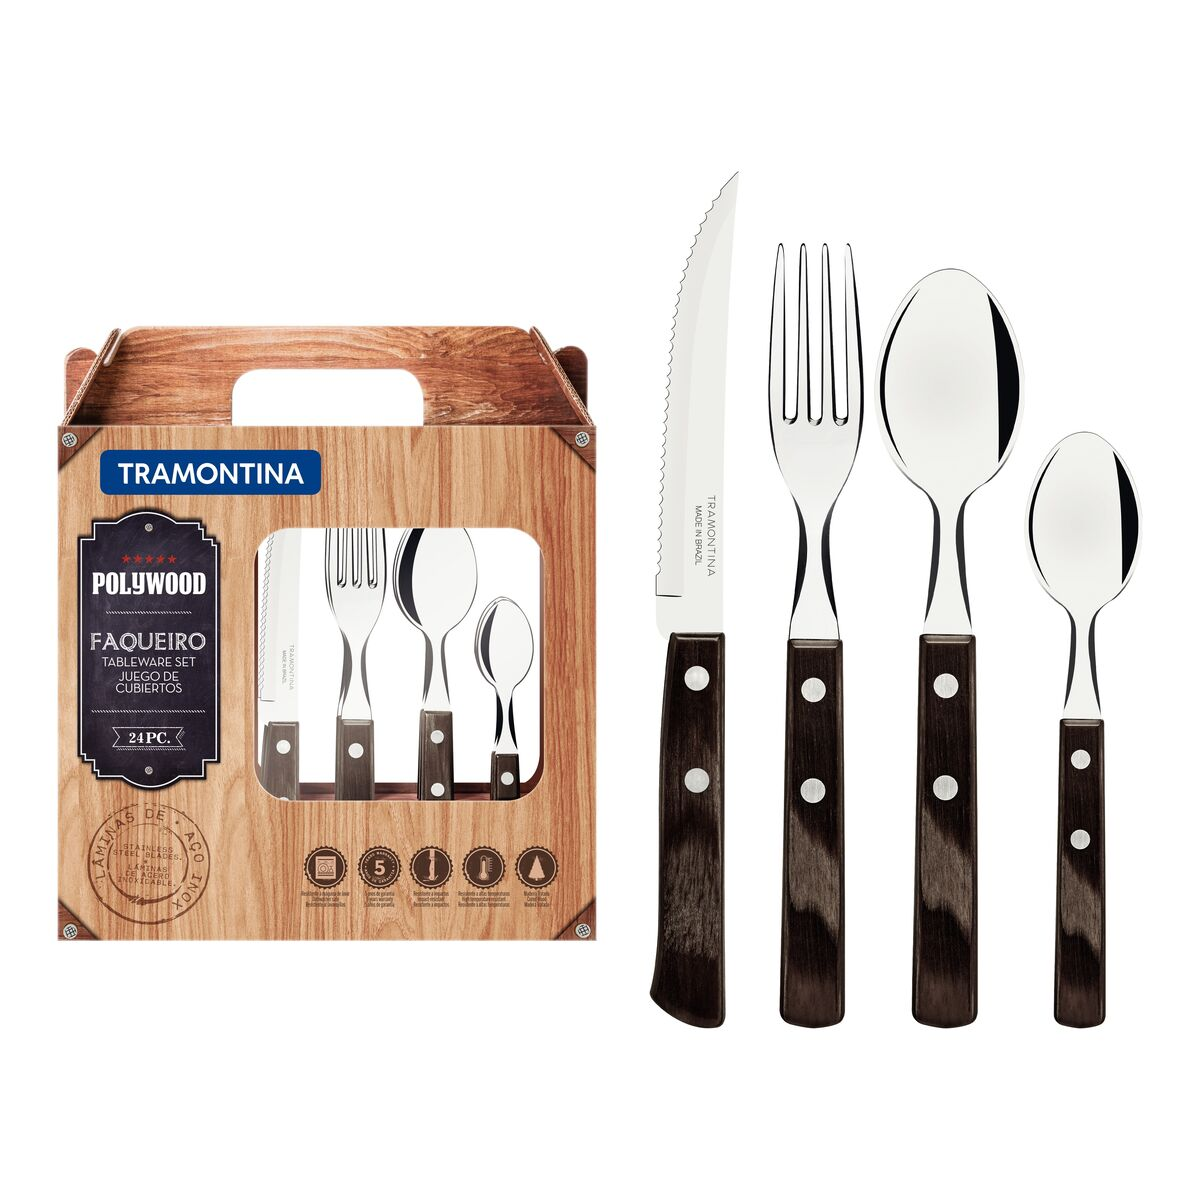 Tramontina Polywood stainless steel flatware set with brown wood handles, 24 pcs